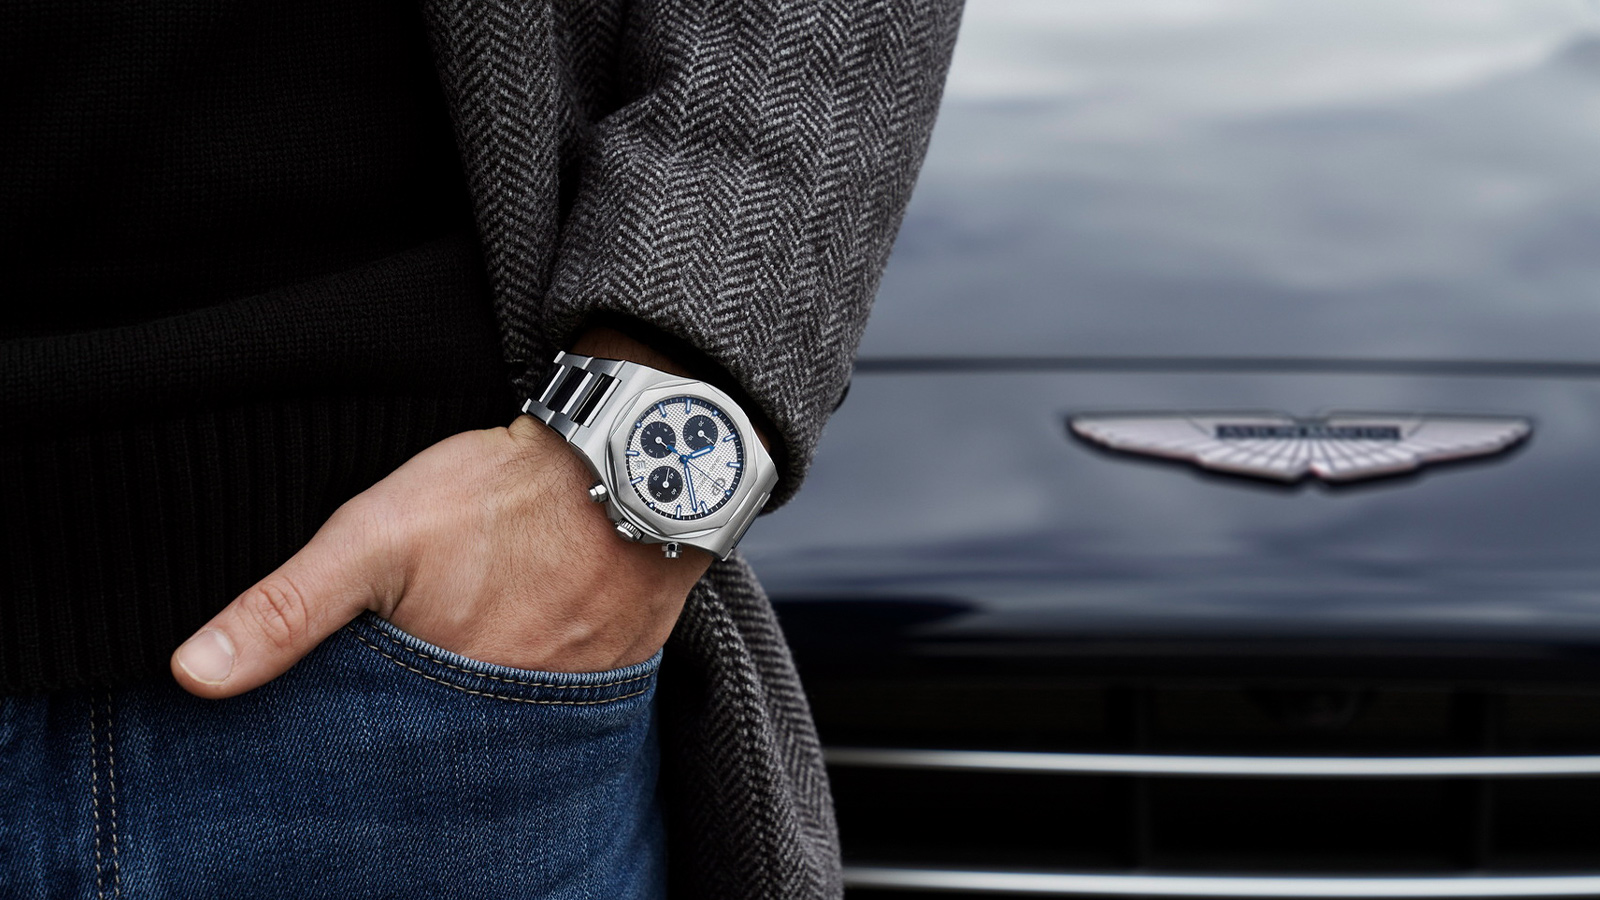 Aston Martin Partners With Girard-Perregaux As Official Watch Partner